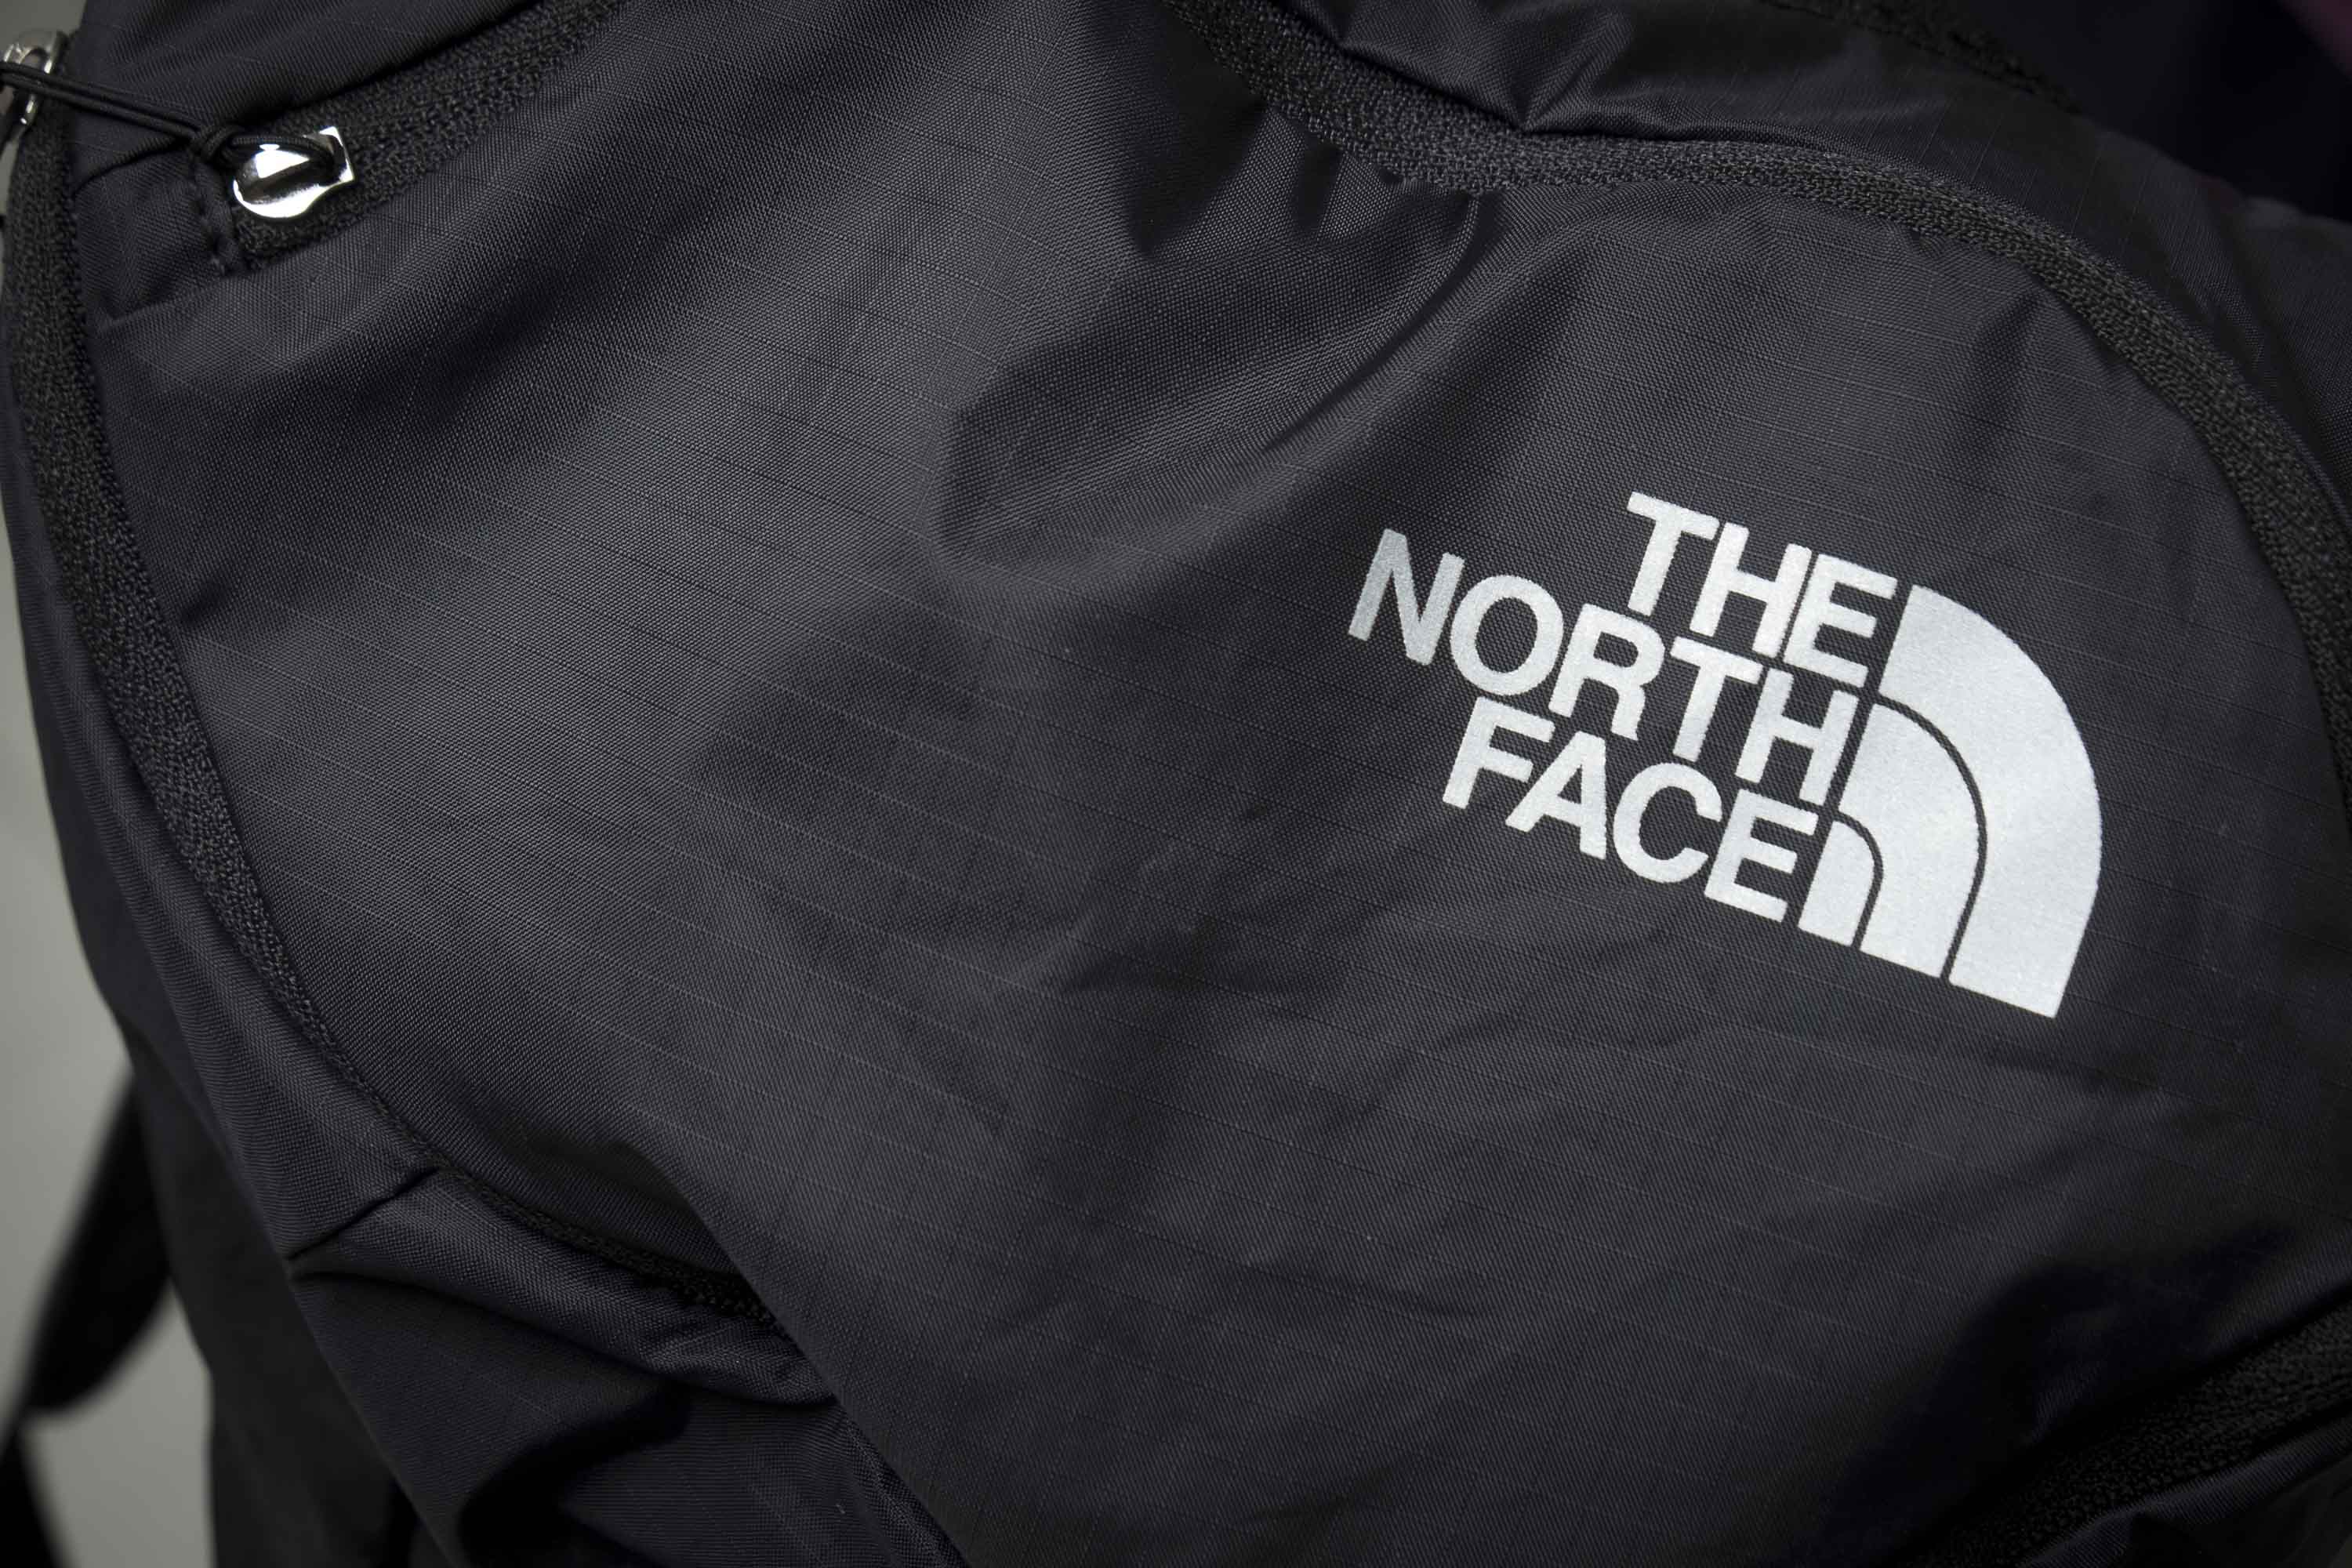 Martin Wing LT 6L - Better than Naked - product review - The North Face - Singapore